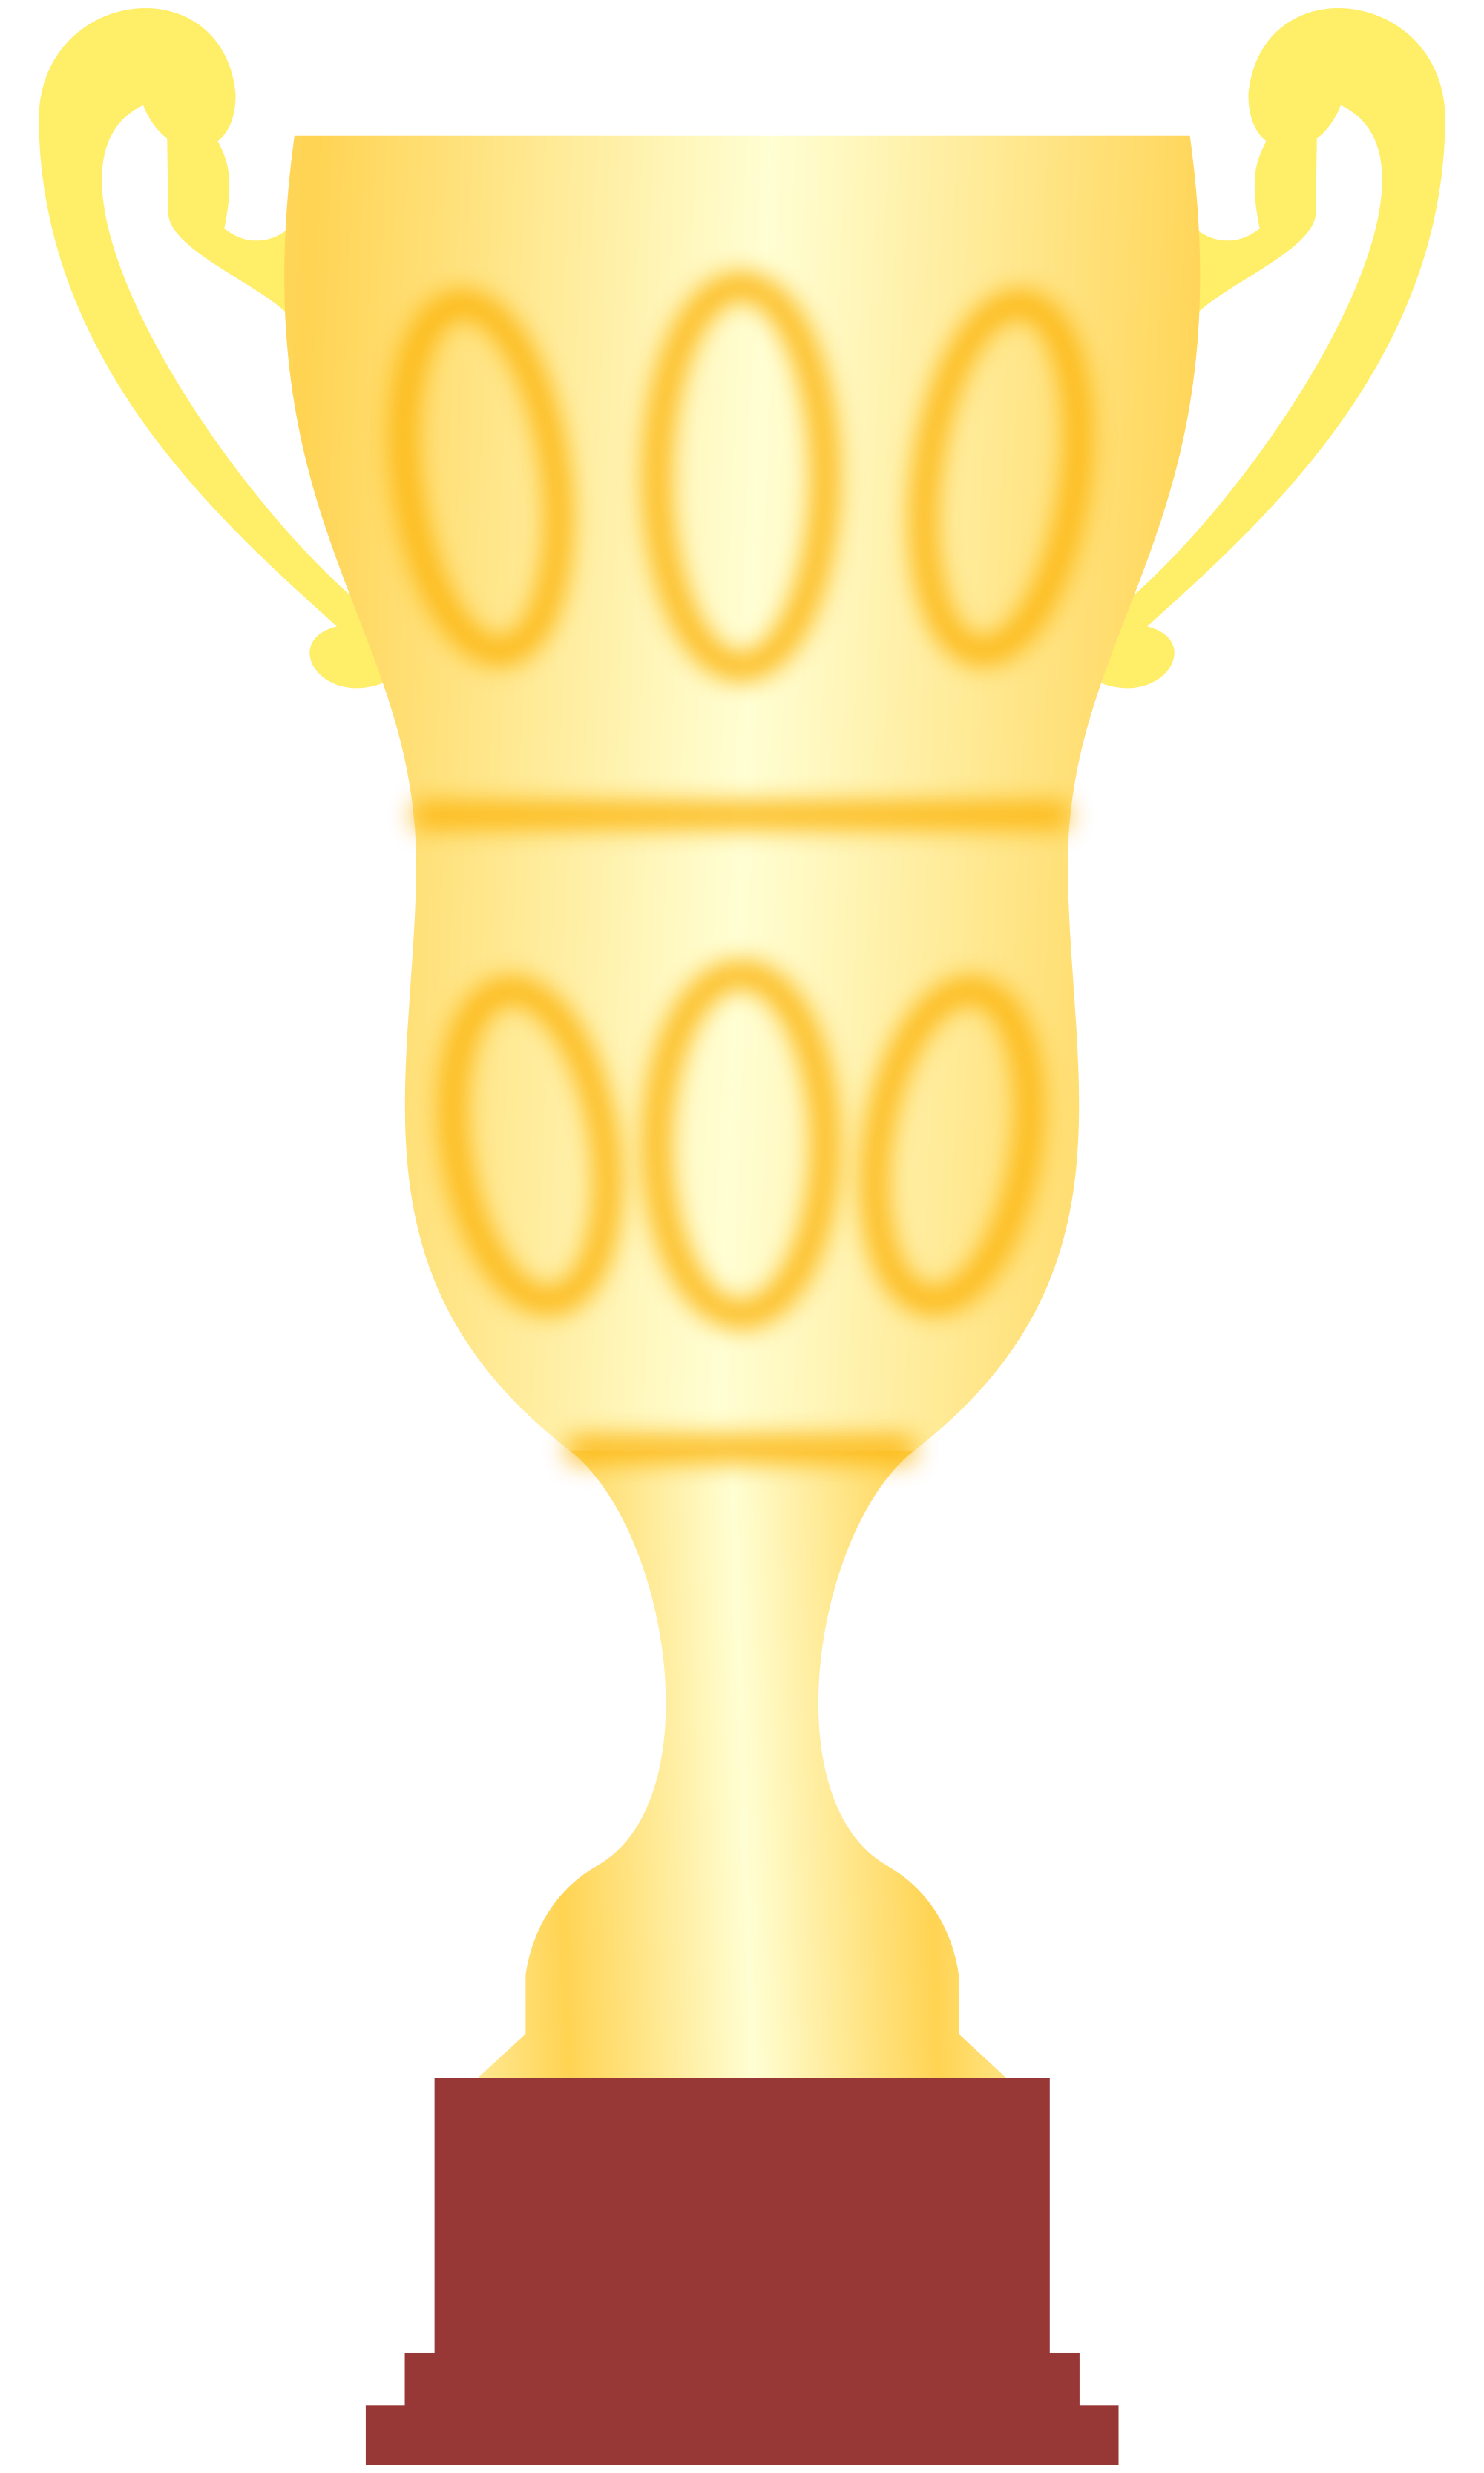 Volleyball clipart trophy. File coppa cev svg